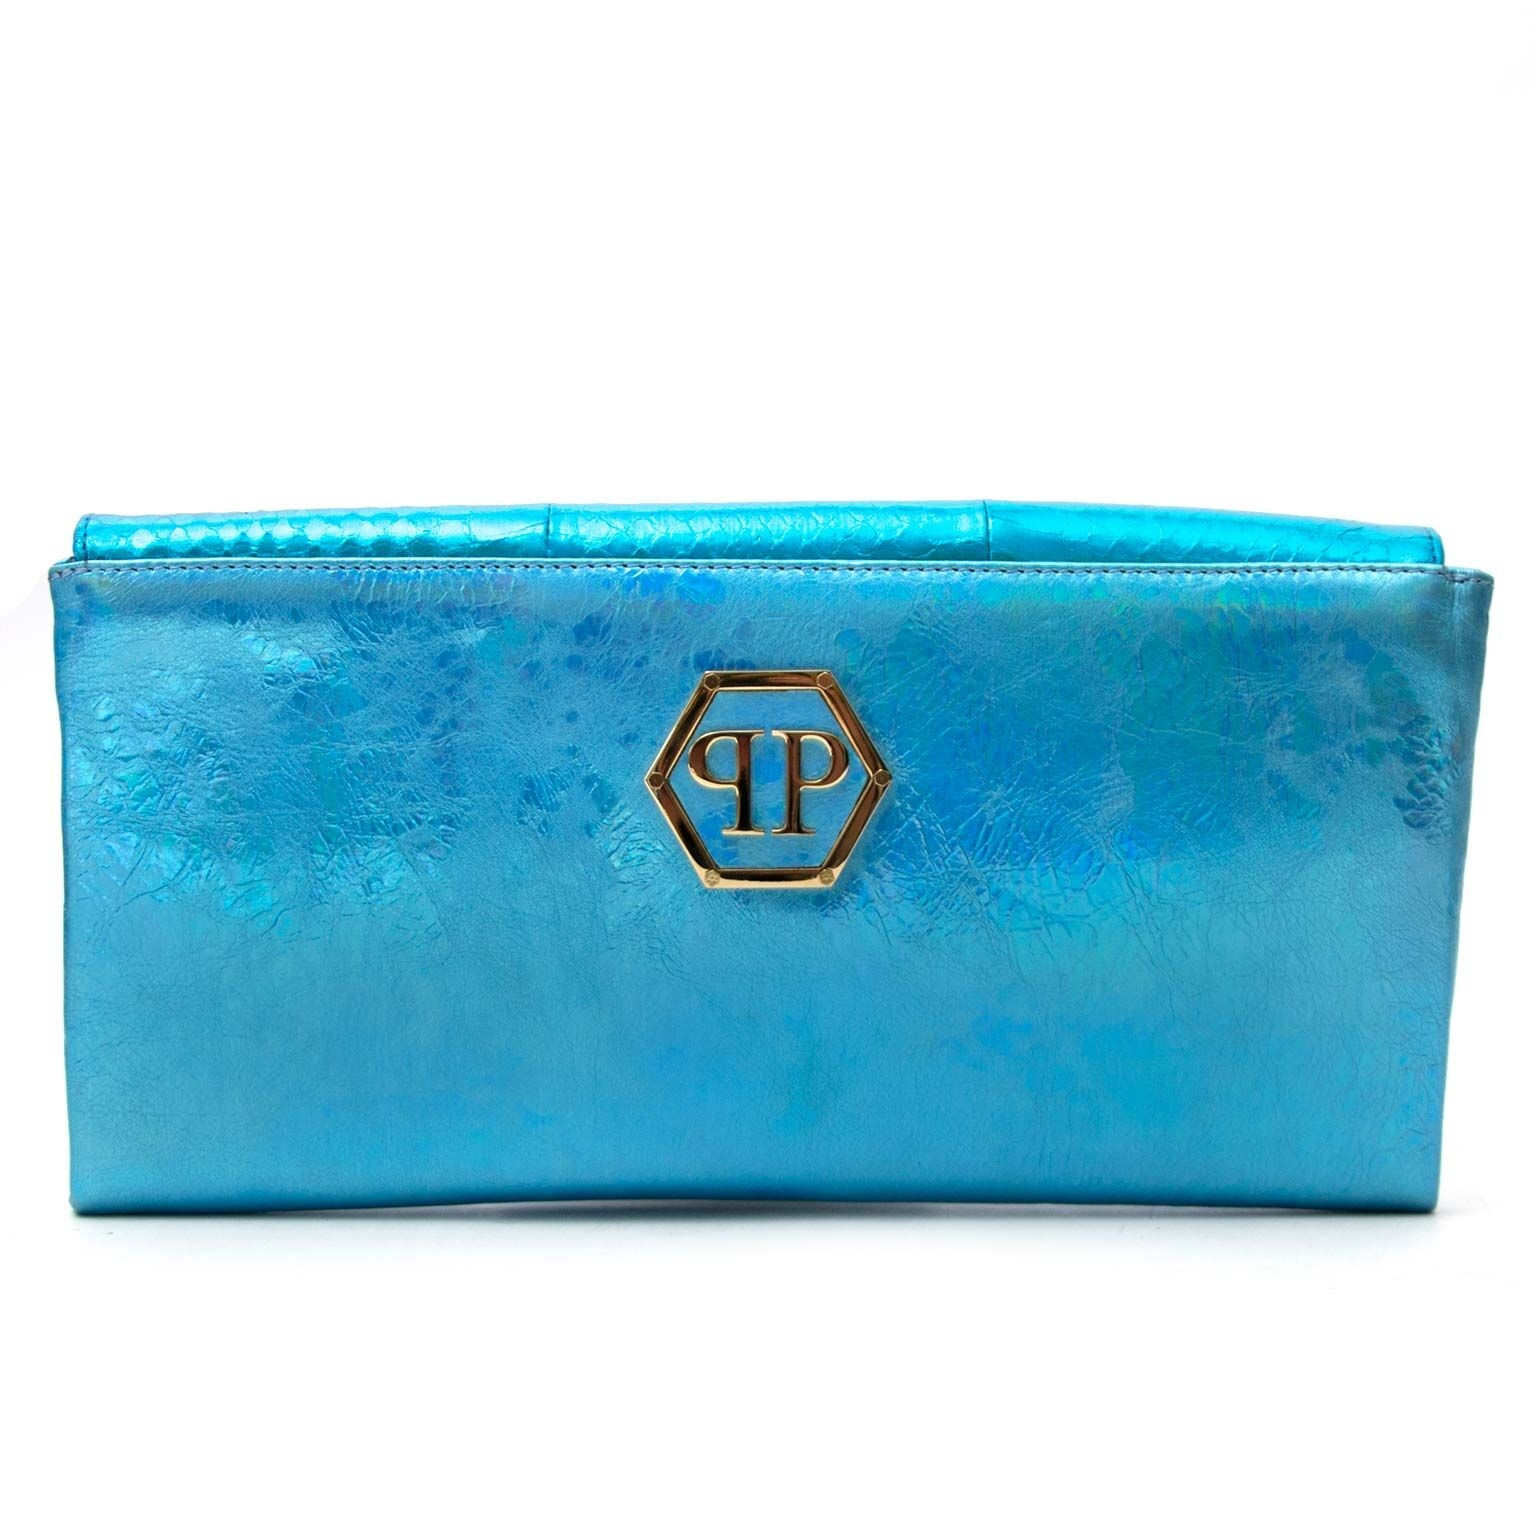 secondhand Phillip Plein clutches